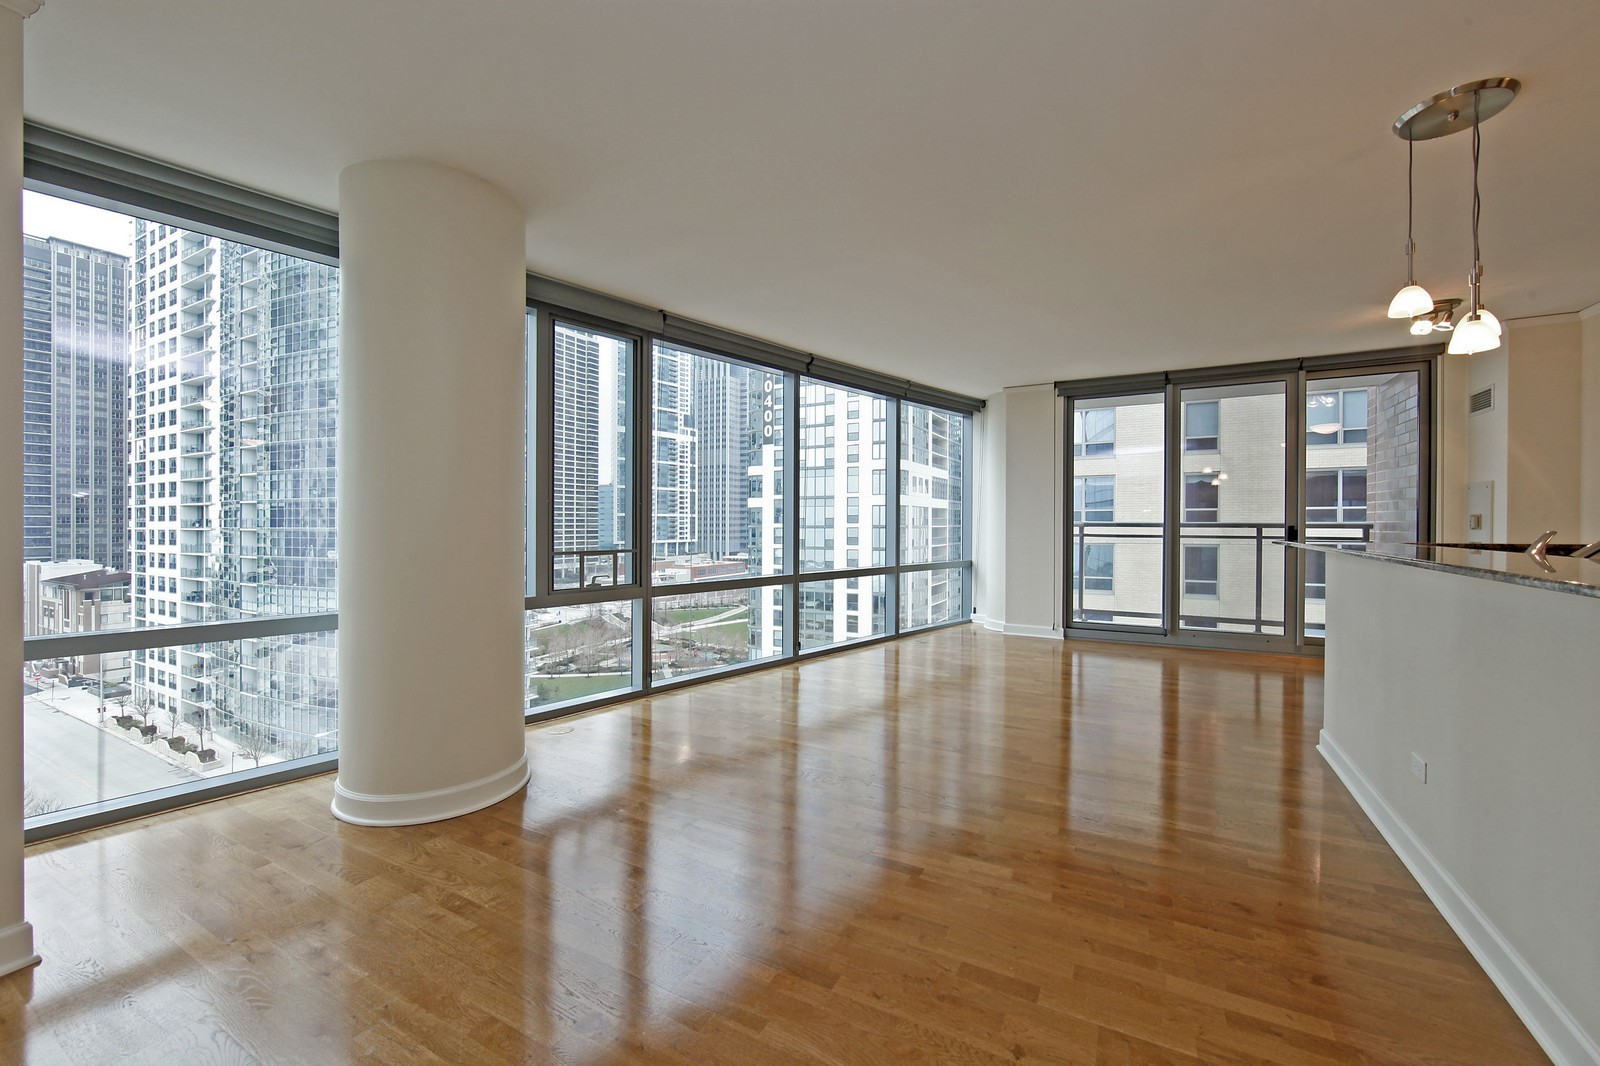 Real Estate Photography - 450 E Waterside, 708, Chicago, IL, 60601 - Living Room